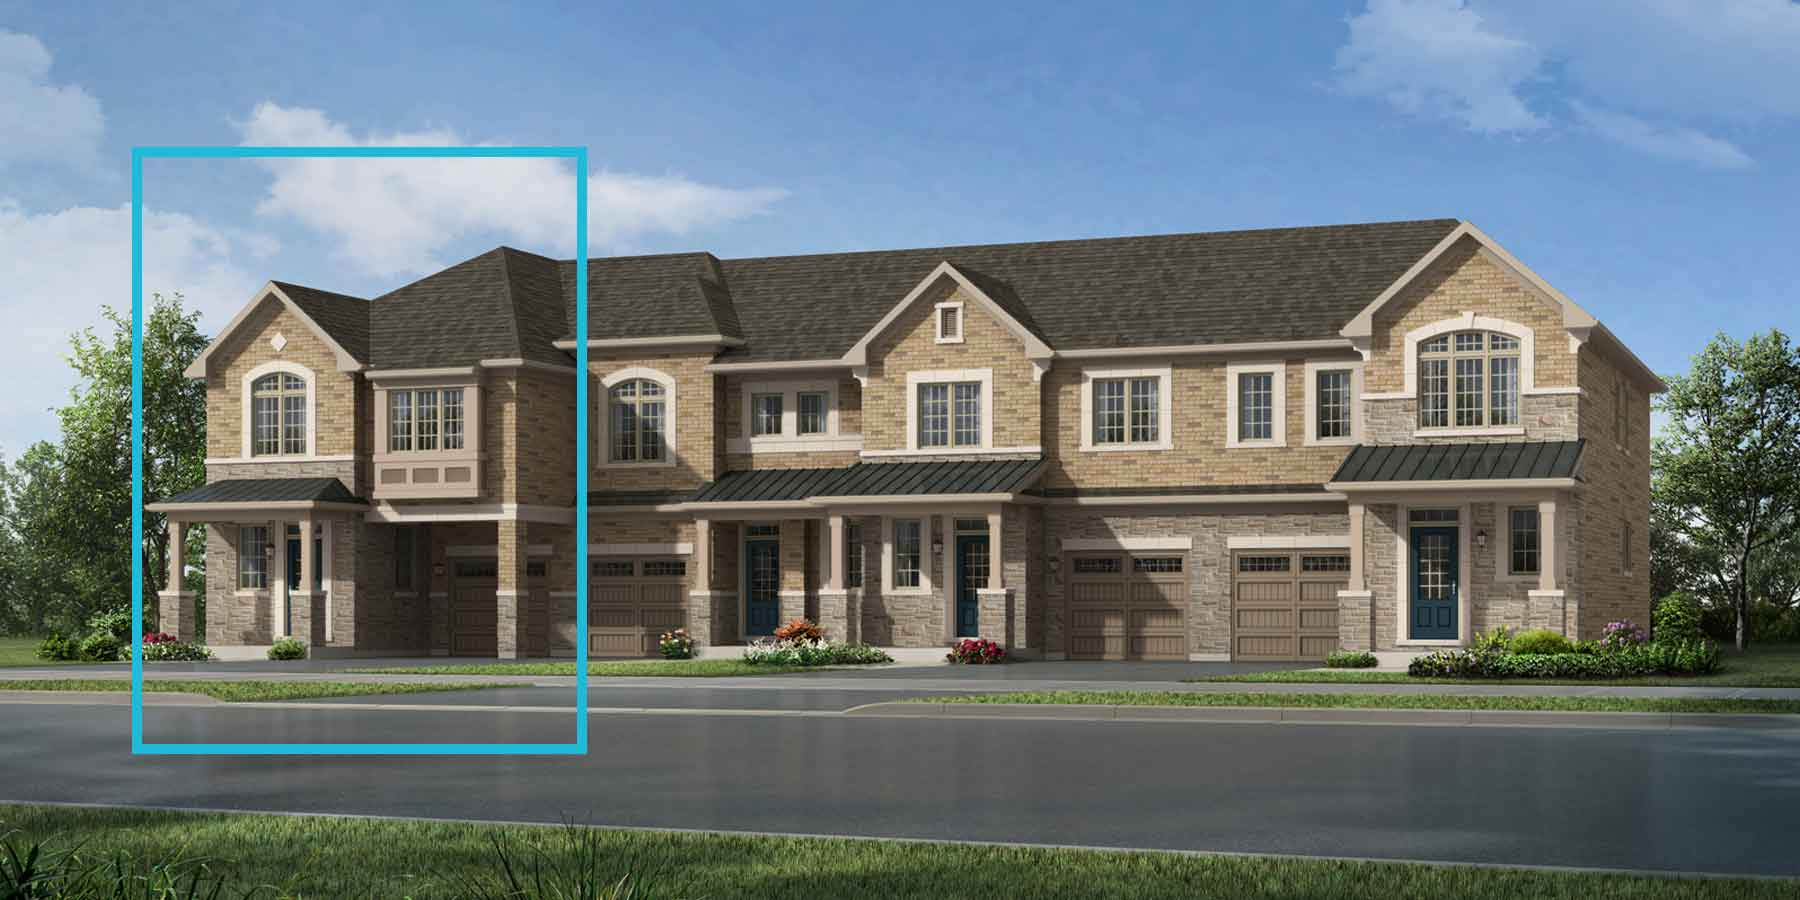 Pinegrove End Plan TownHomes at Seaton Whitevale in Pickering Ontario by Mattamy Homes